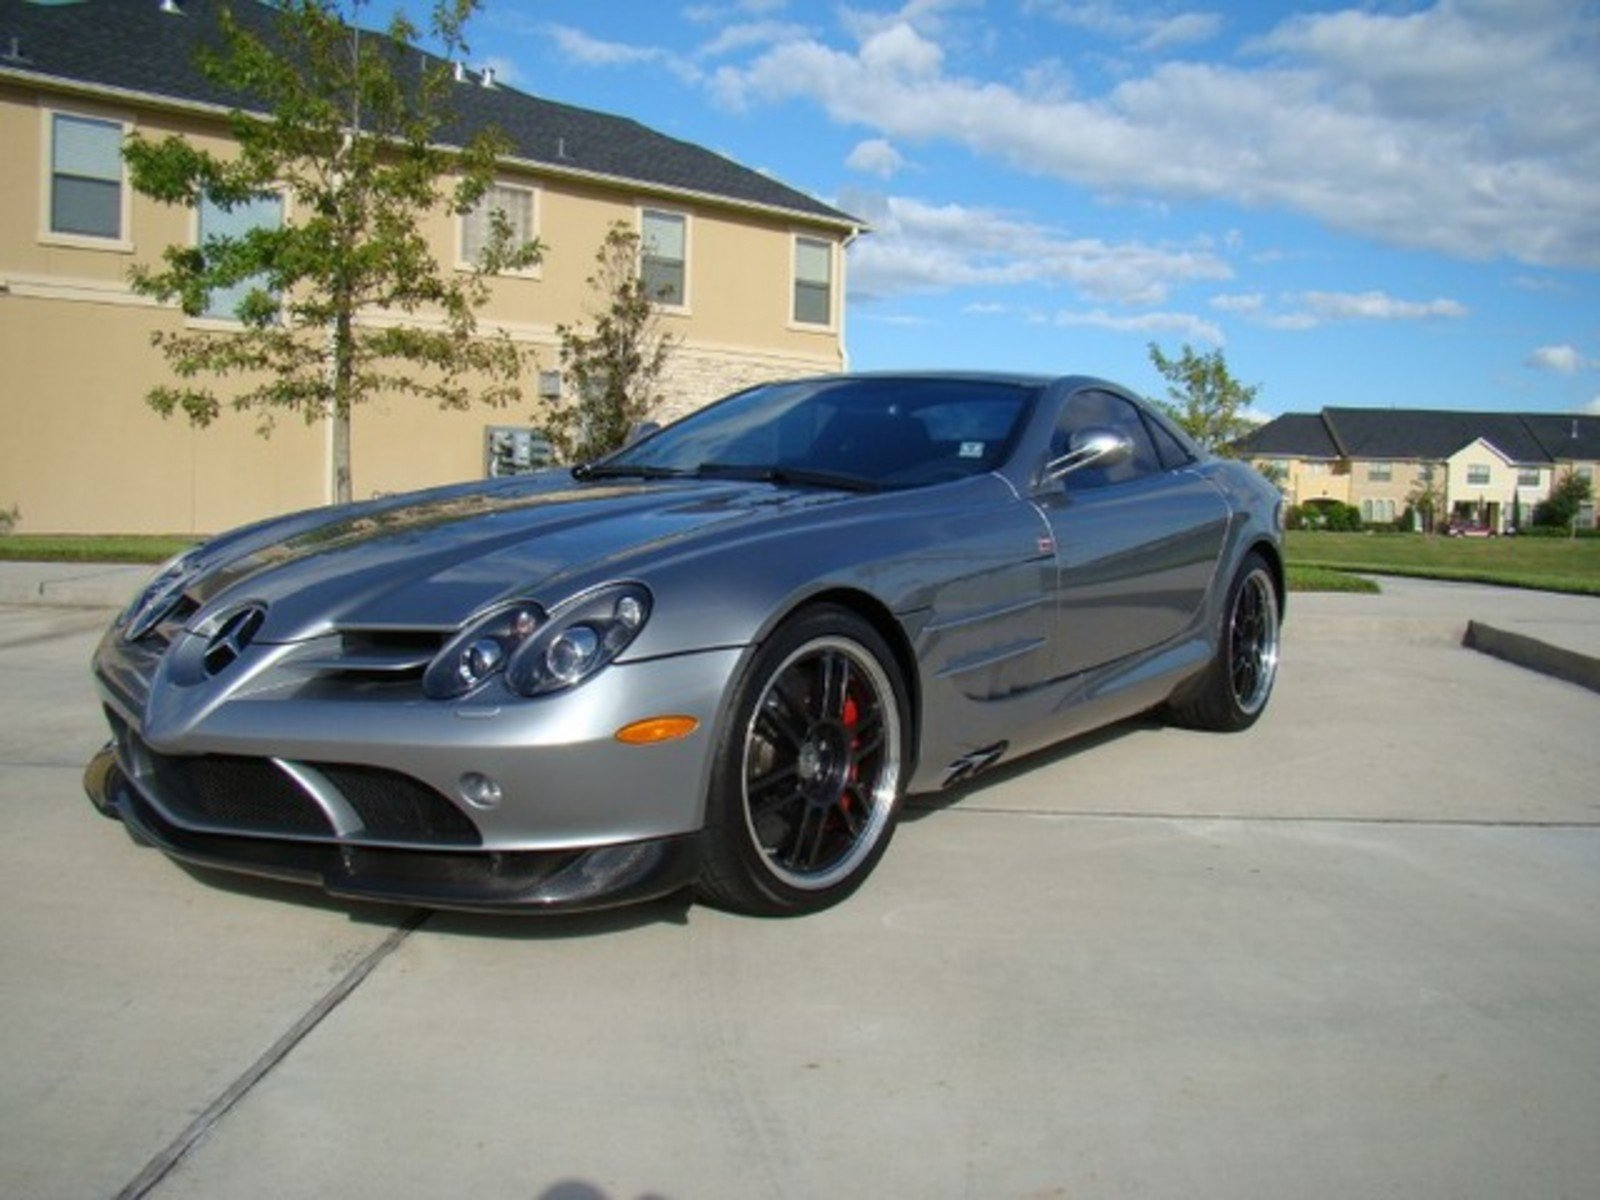 Mercedes SLR-Class Reviews, Specs & Prices - Top Speed